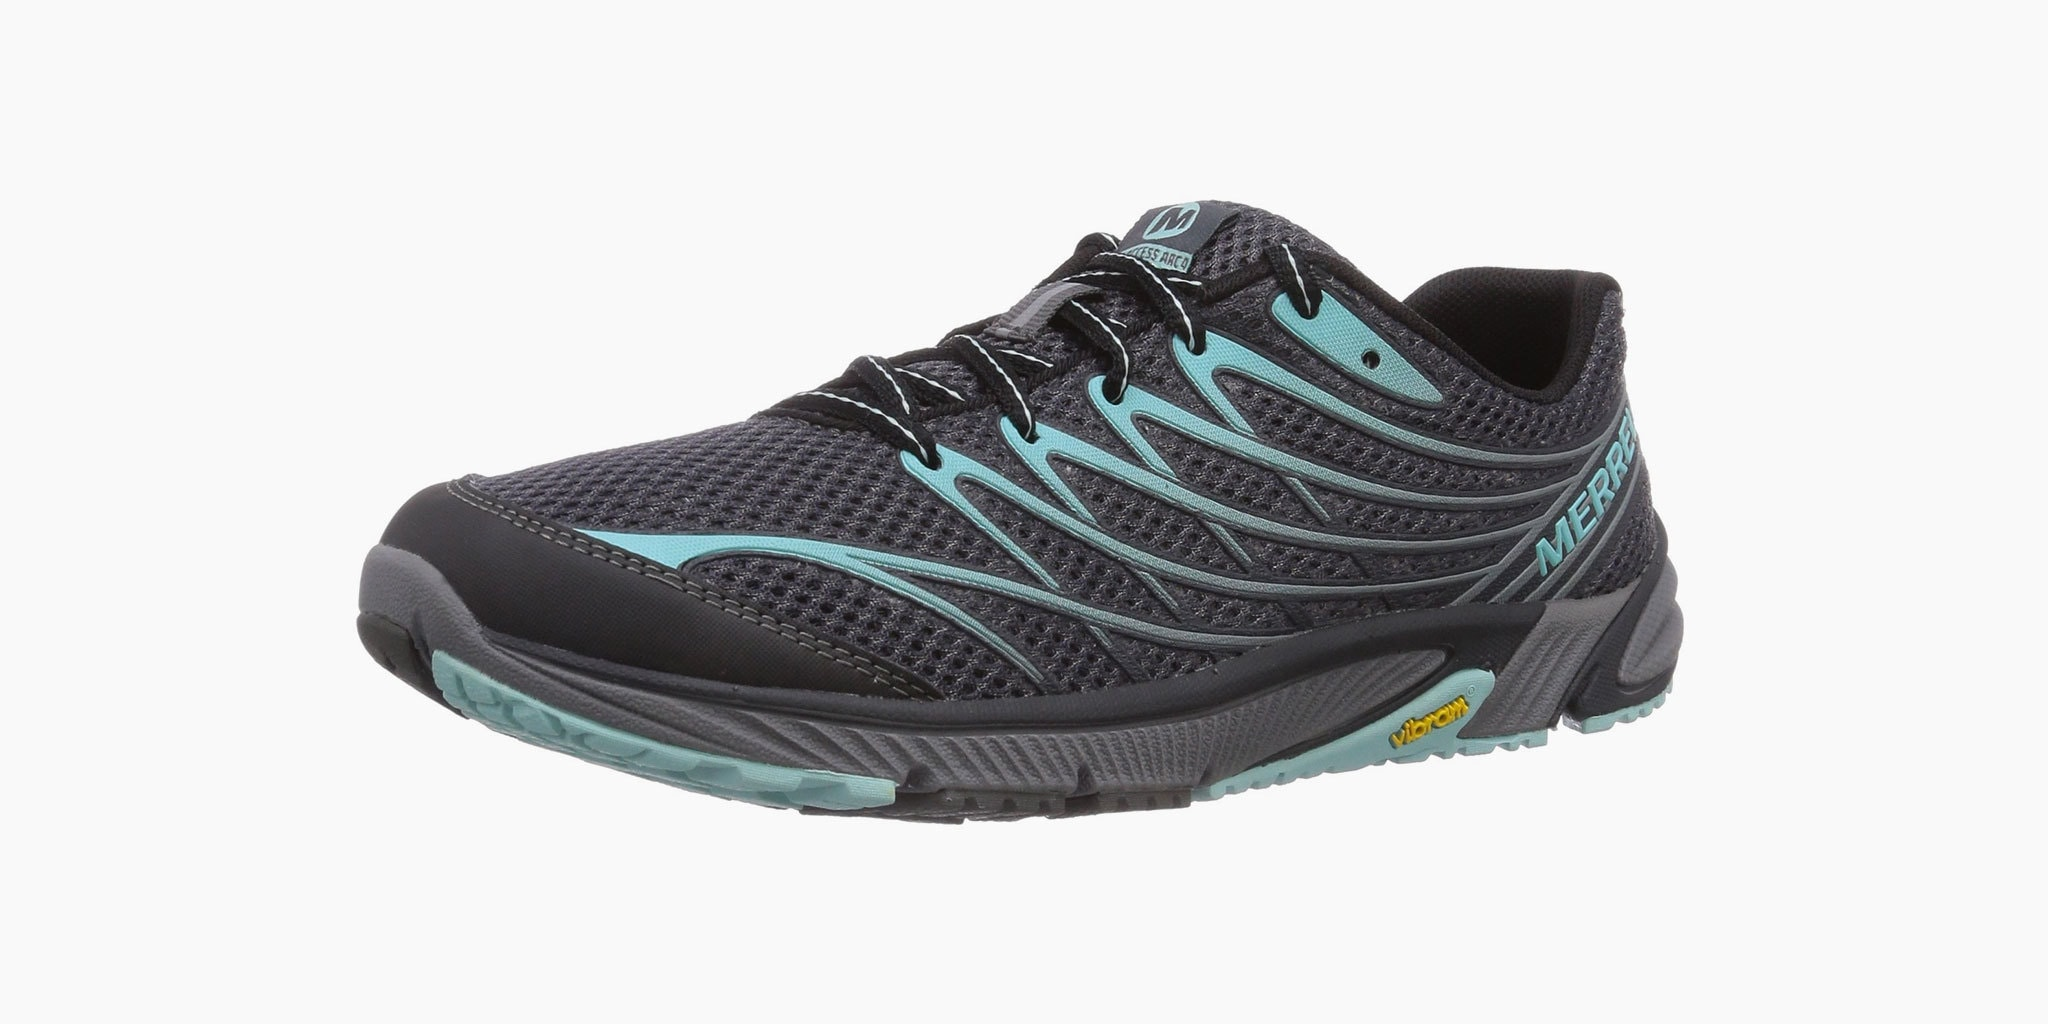 new products 2f38c 9d72e The Best Trail Running Shoes for Flat Feet: 2019 Buyer's Guide